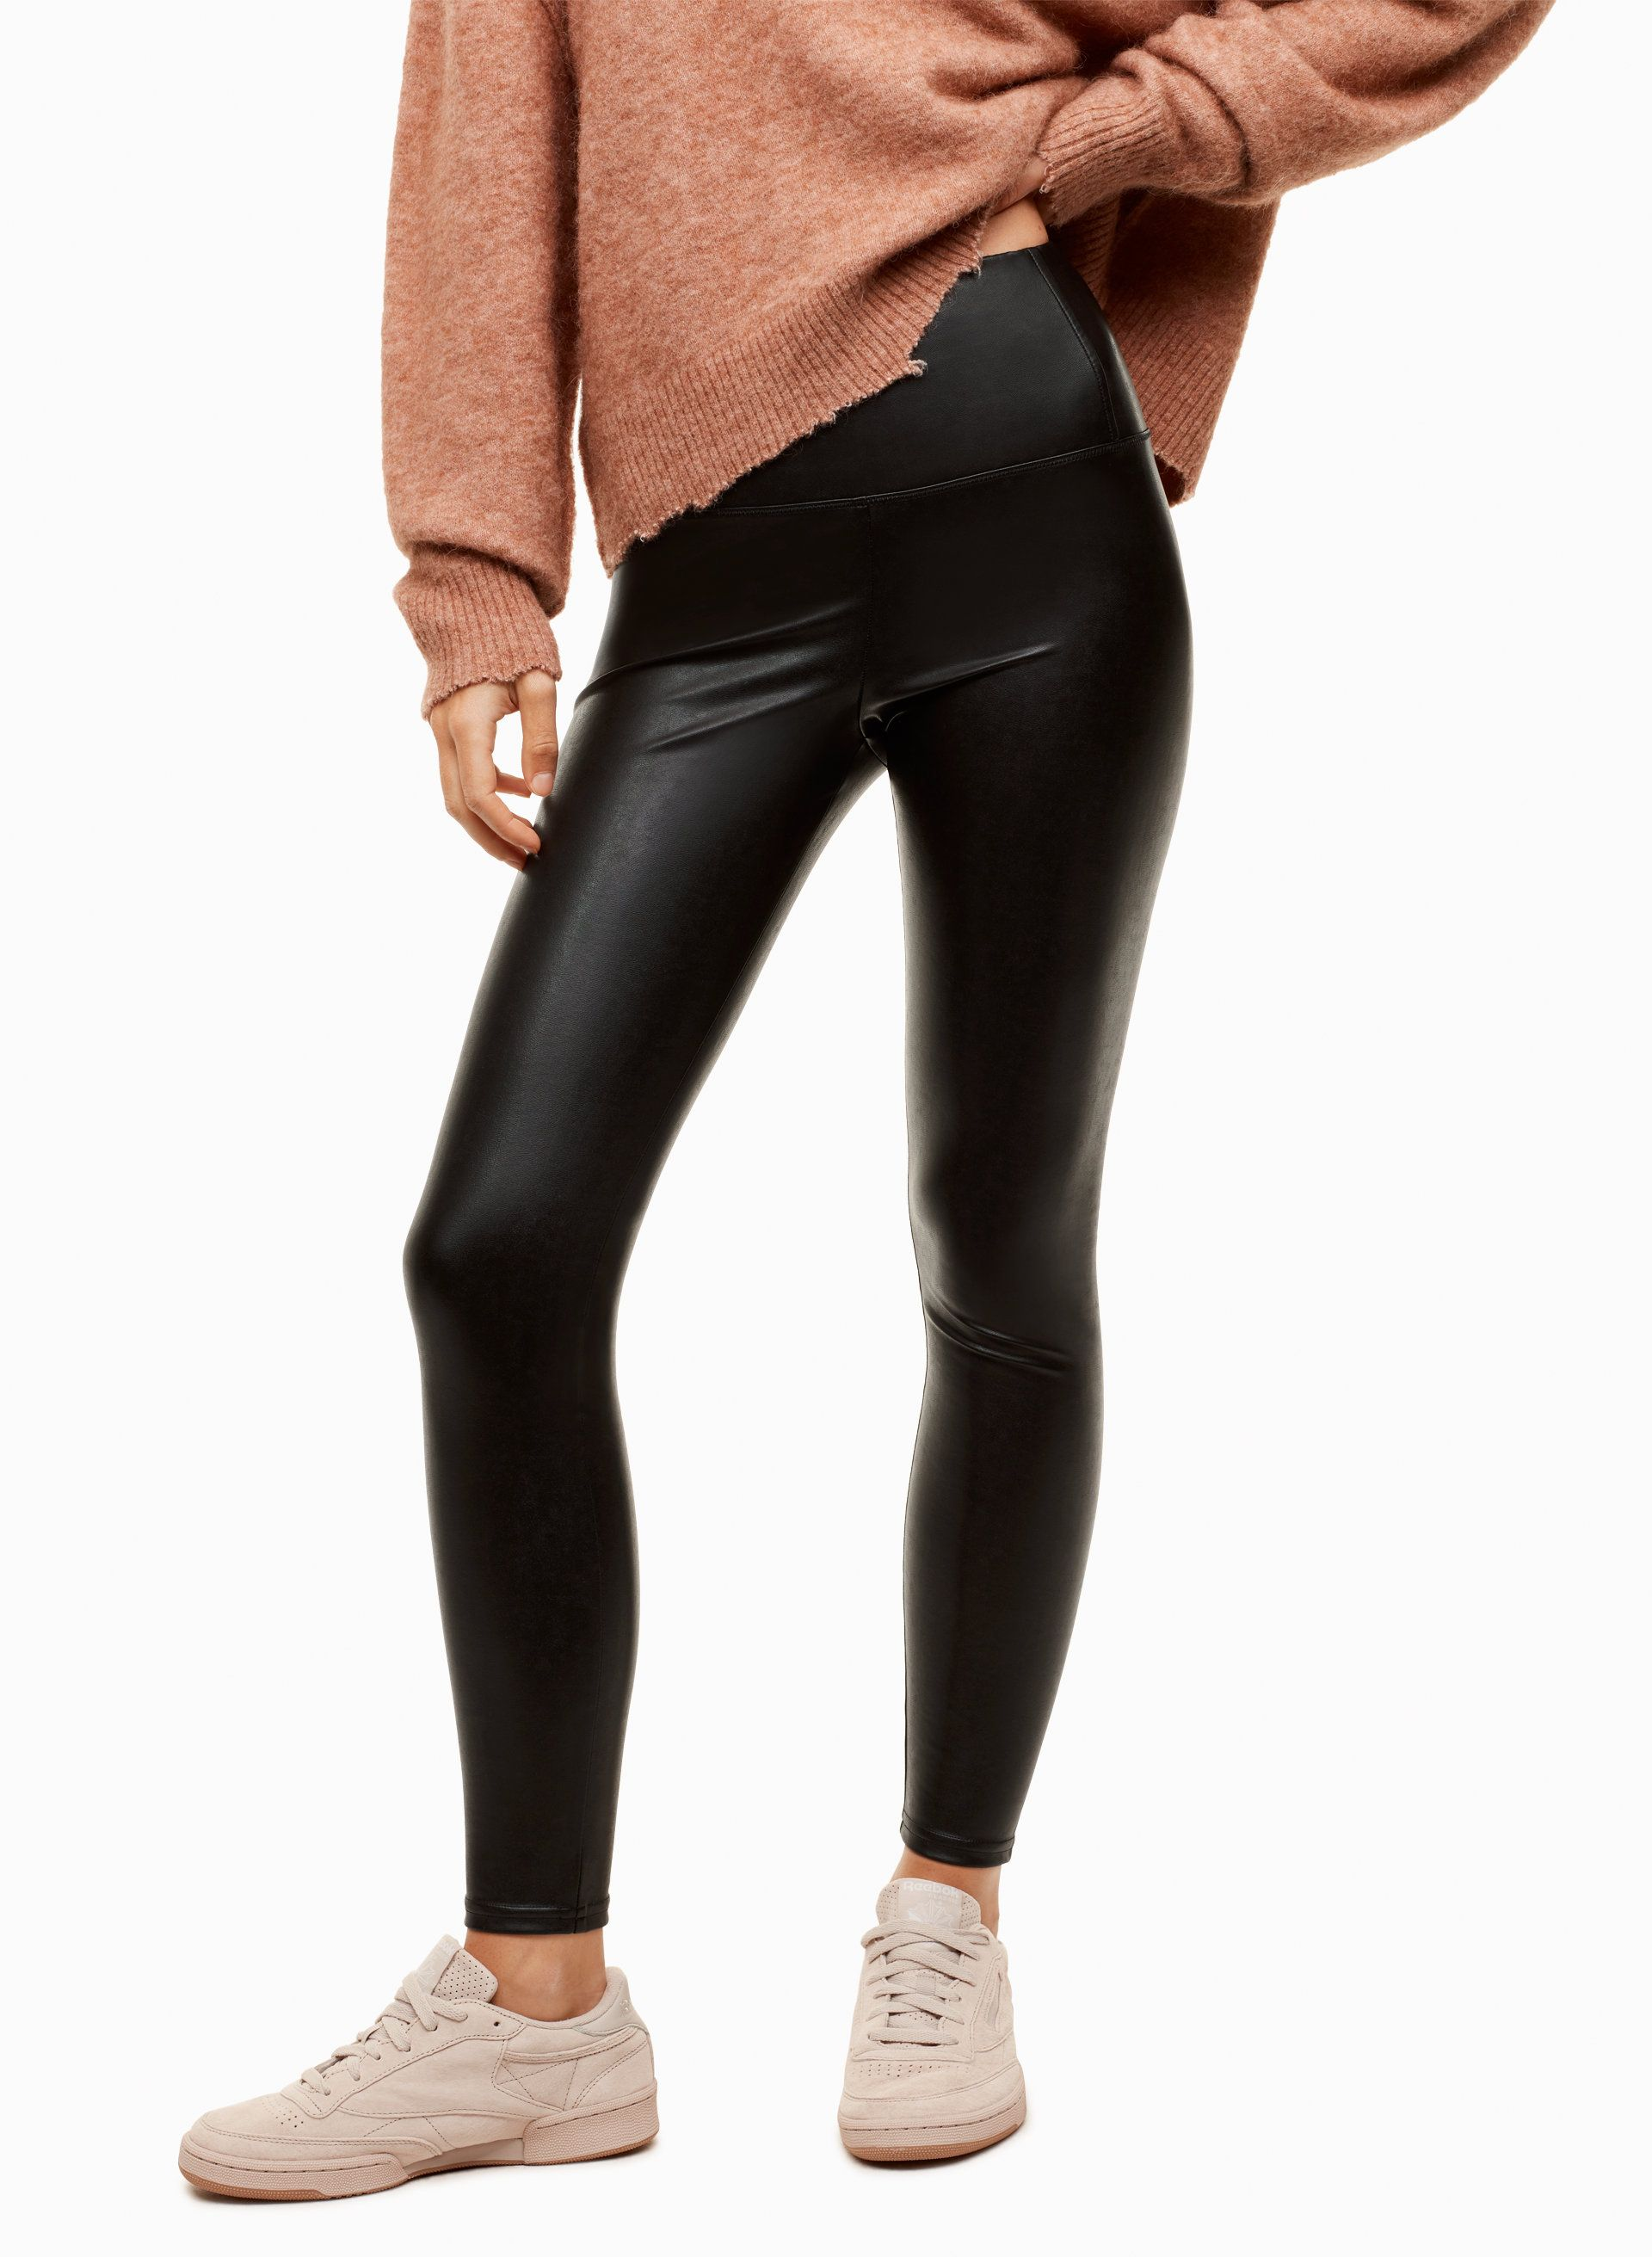 936249474aaba3 Daria ankle pant | Wardrobe | Pants, Leather Pants, Ankle pants